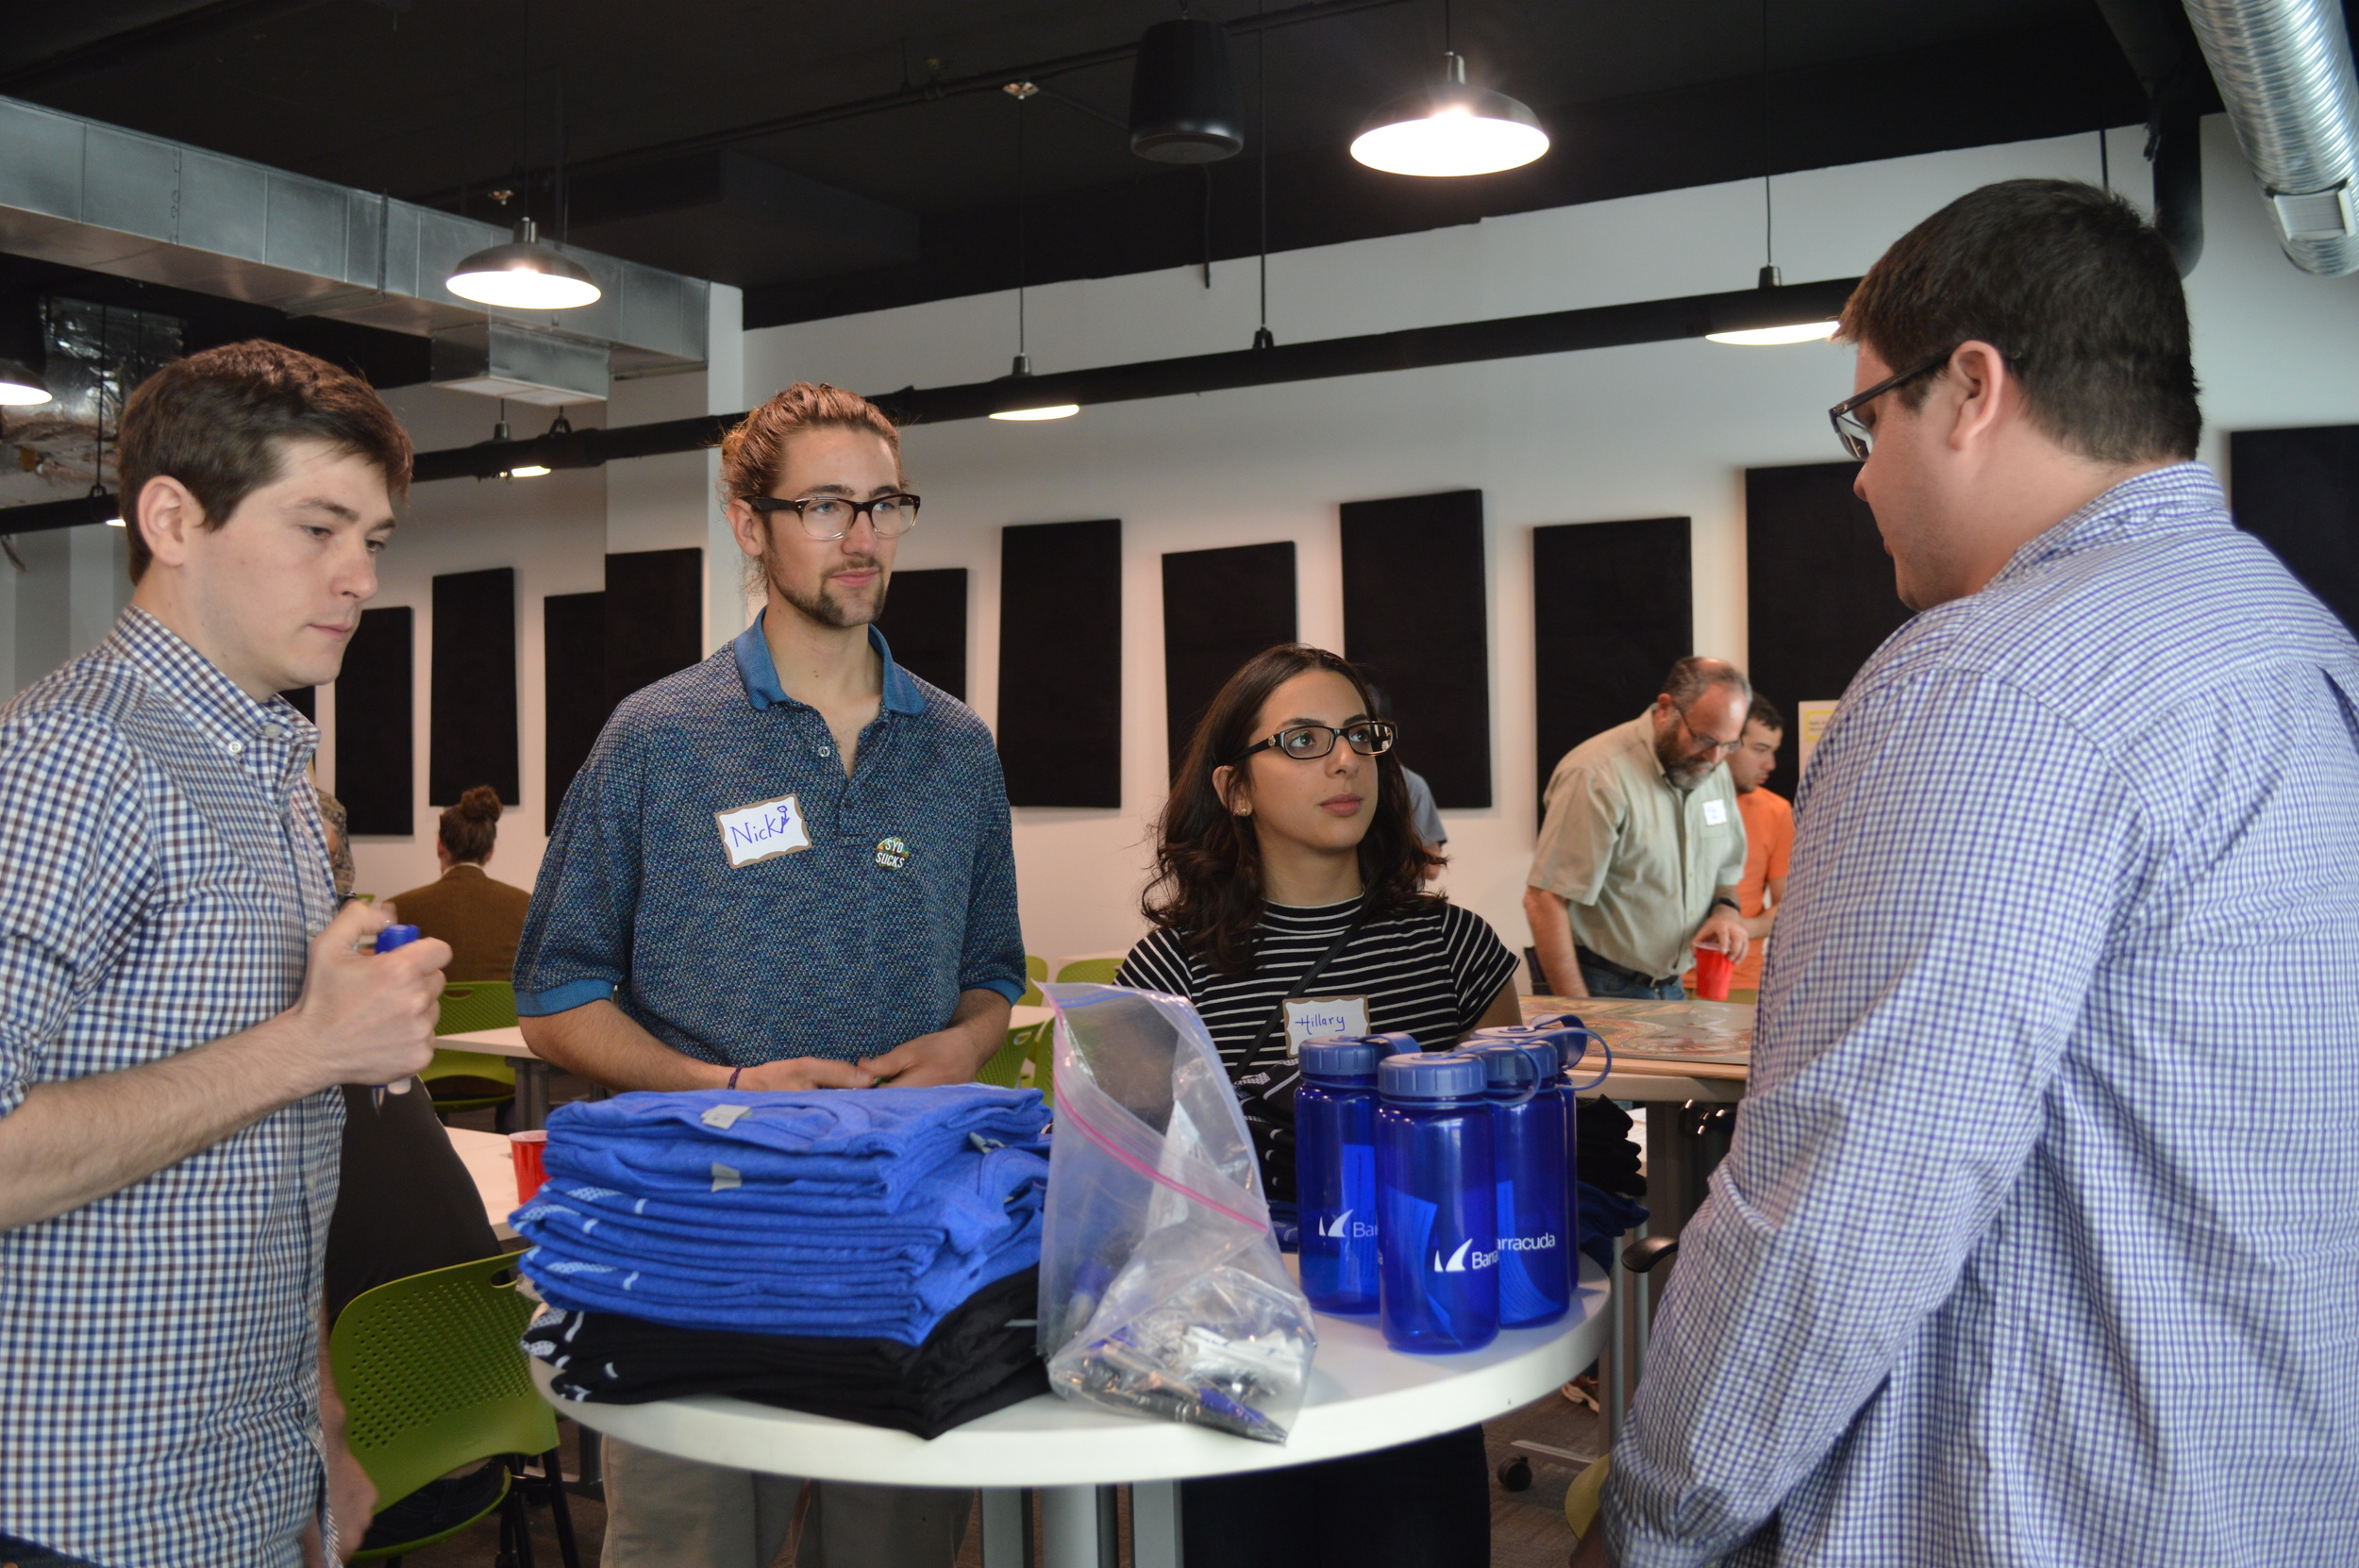 Apollo alumnus Alex John talks about his company and passes out promotional materials.